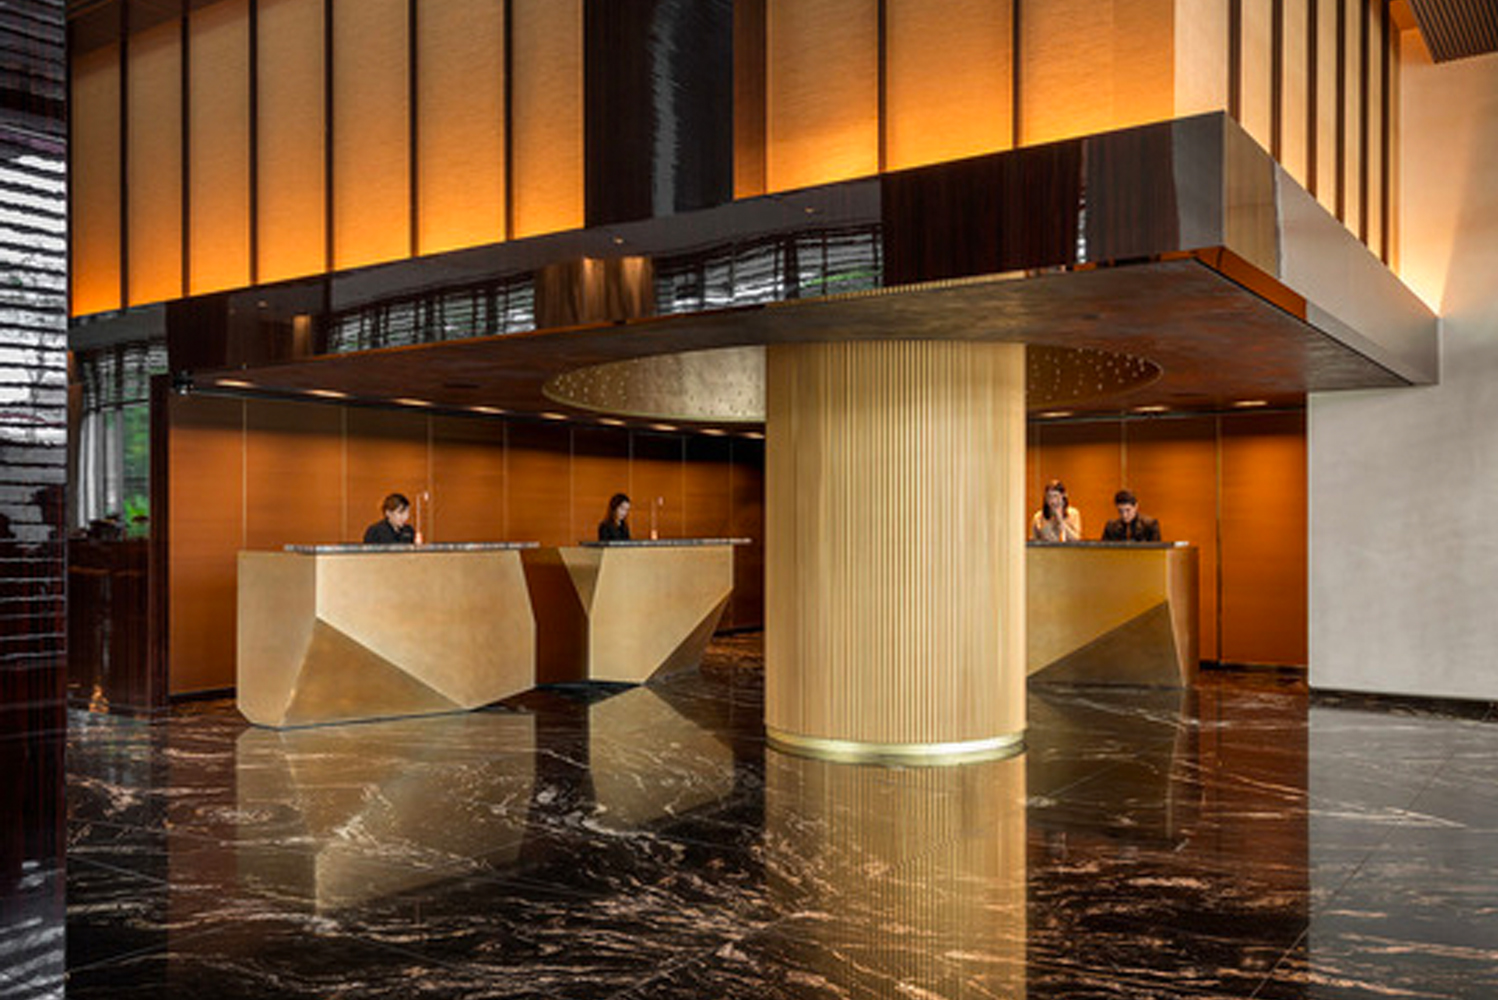 BAMO completed its 12th project for Four Seasons Hotels & Resorts, the Four Seasons Hotel São Paulo at Nações Unidas.